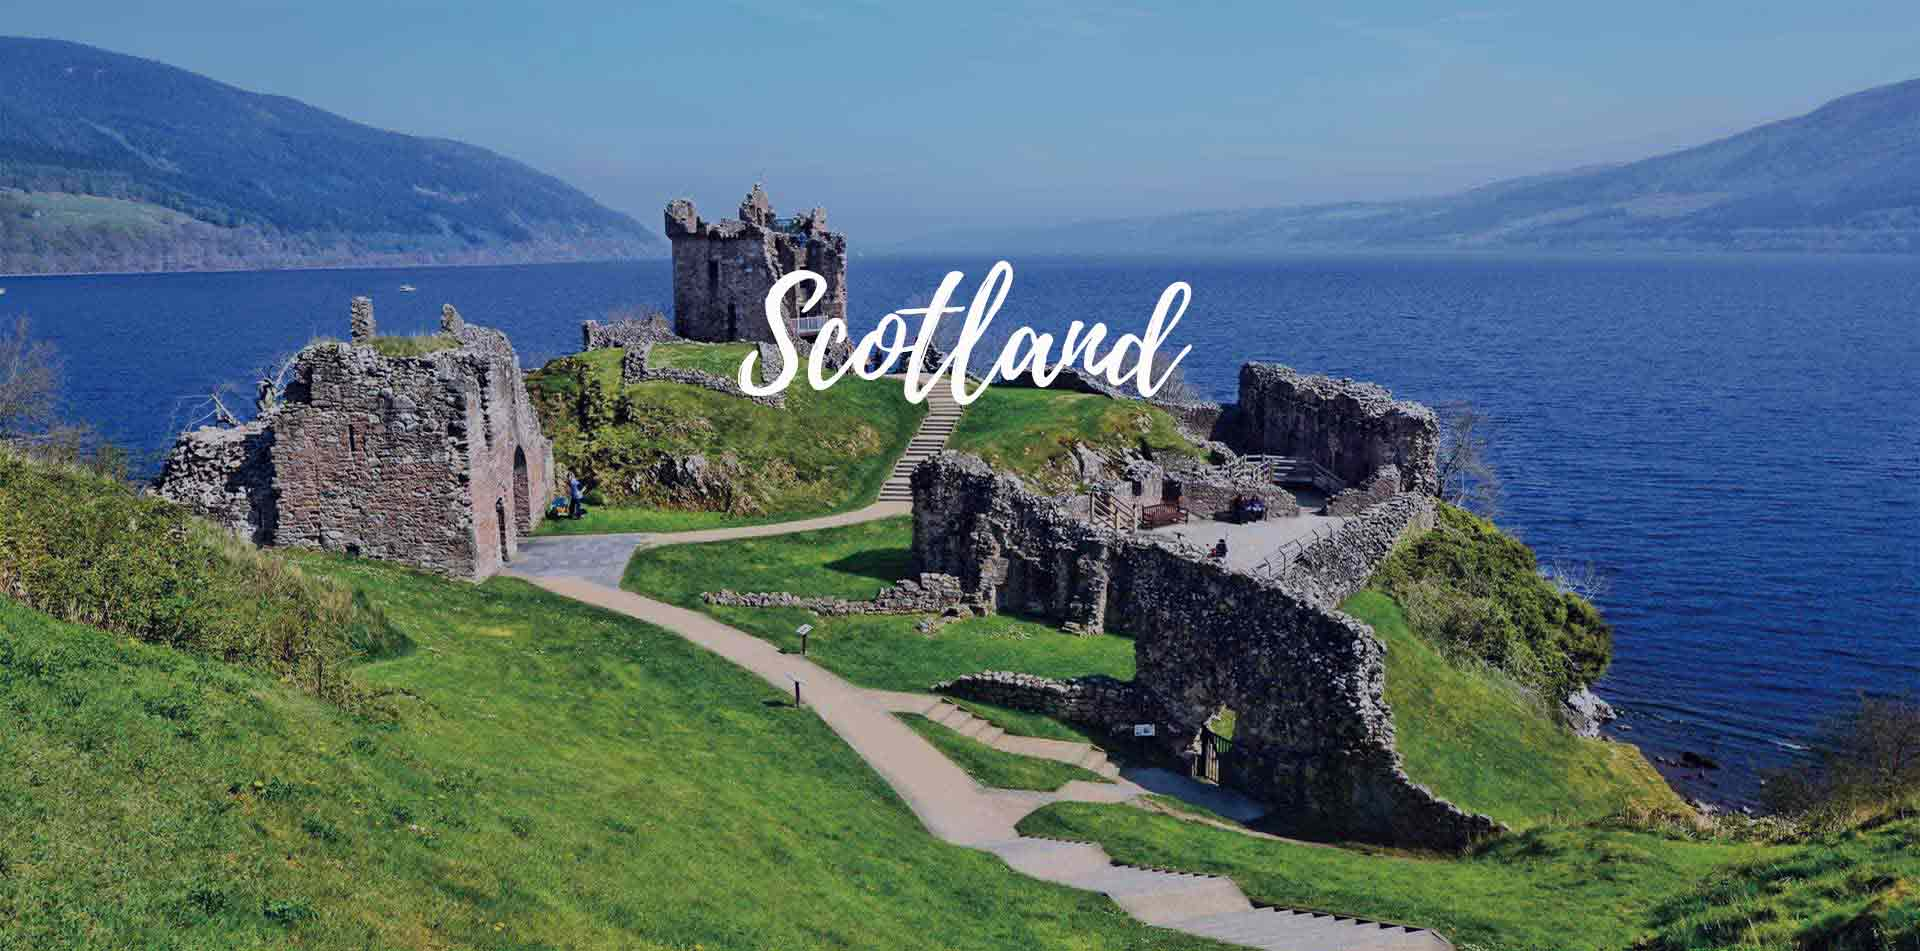 Europe United Kingdom Scotland Urqhart Castle ancient ruins scenic Loch Ness green countryside - luxury vacation destinations